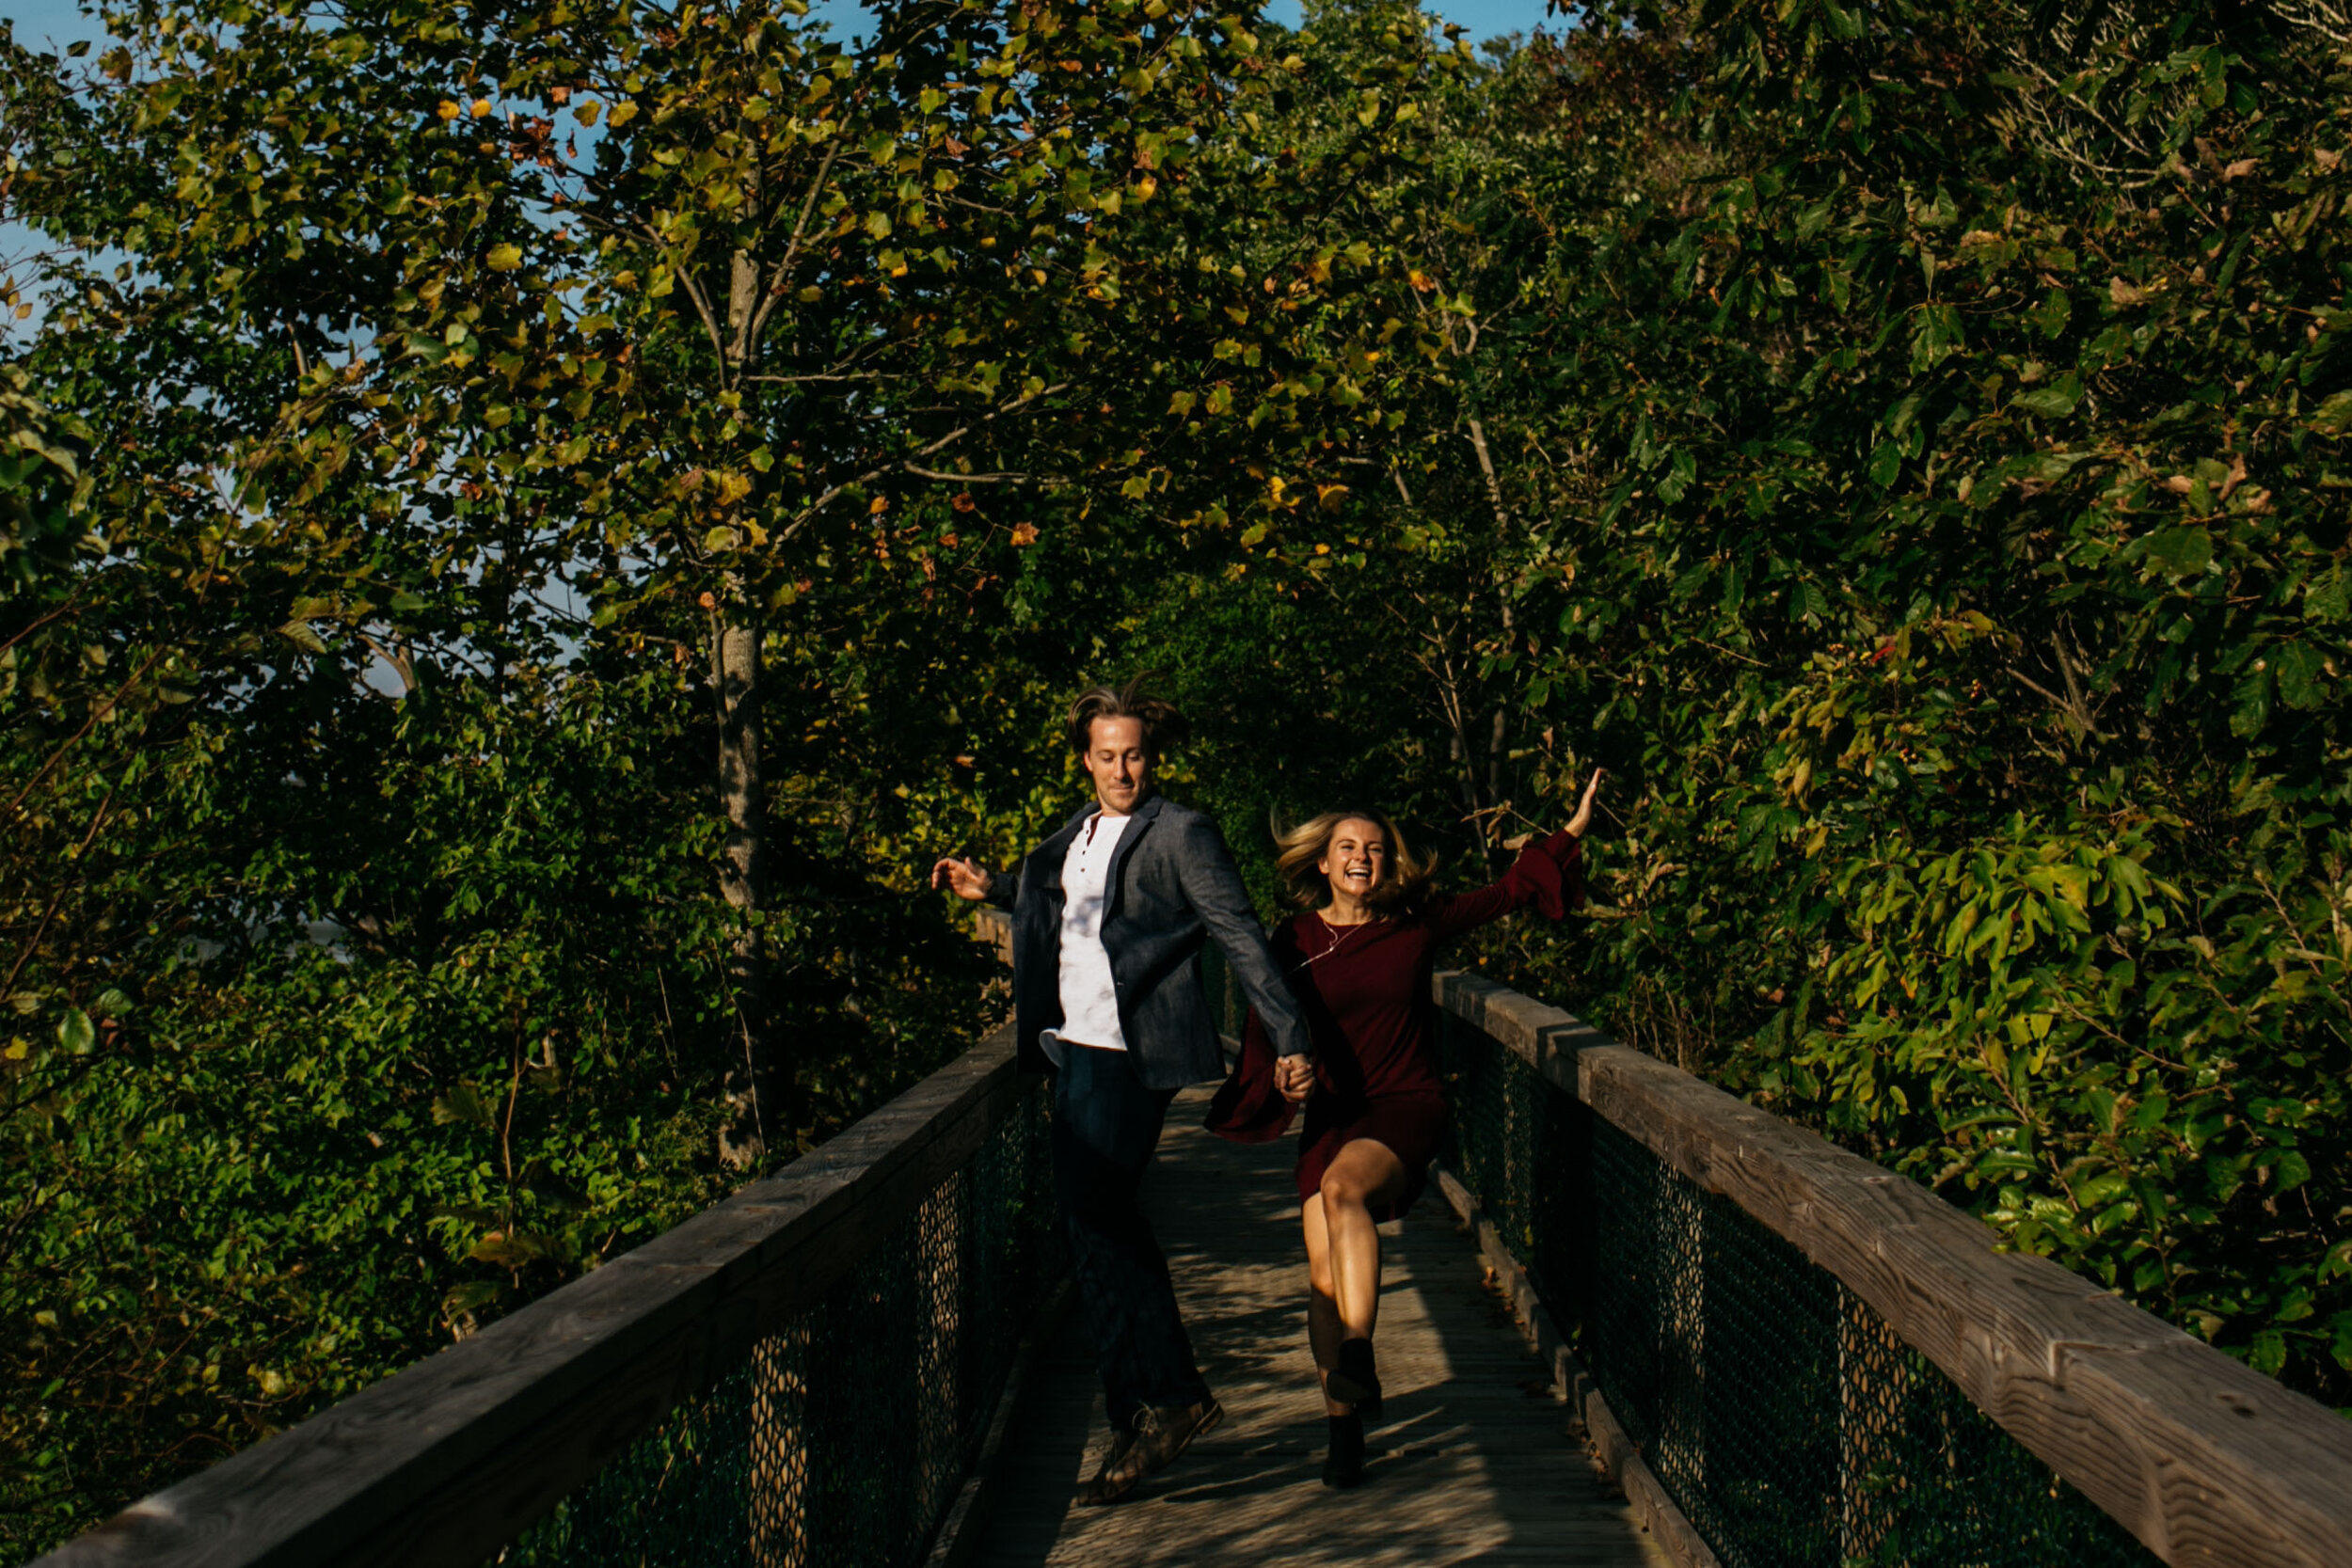 sasha_garth_engagement_mason_neck_state_park_summer_sunset_green_Forest-4.jpg